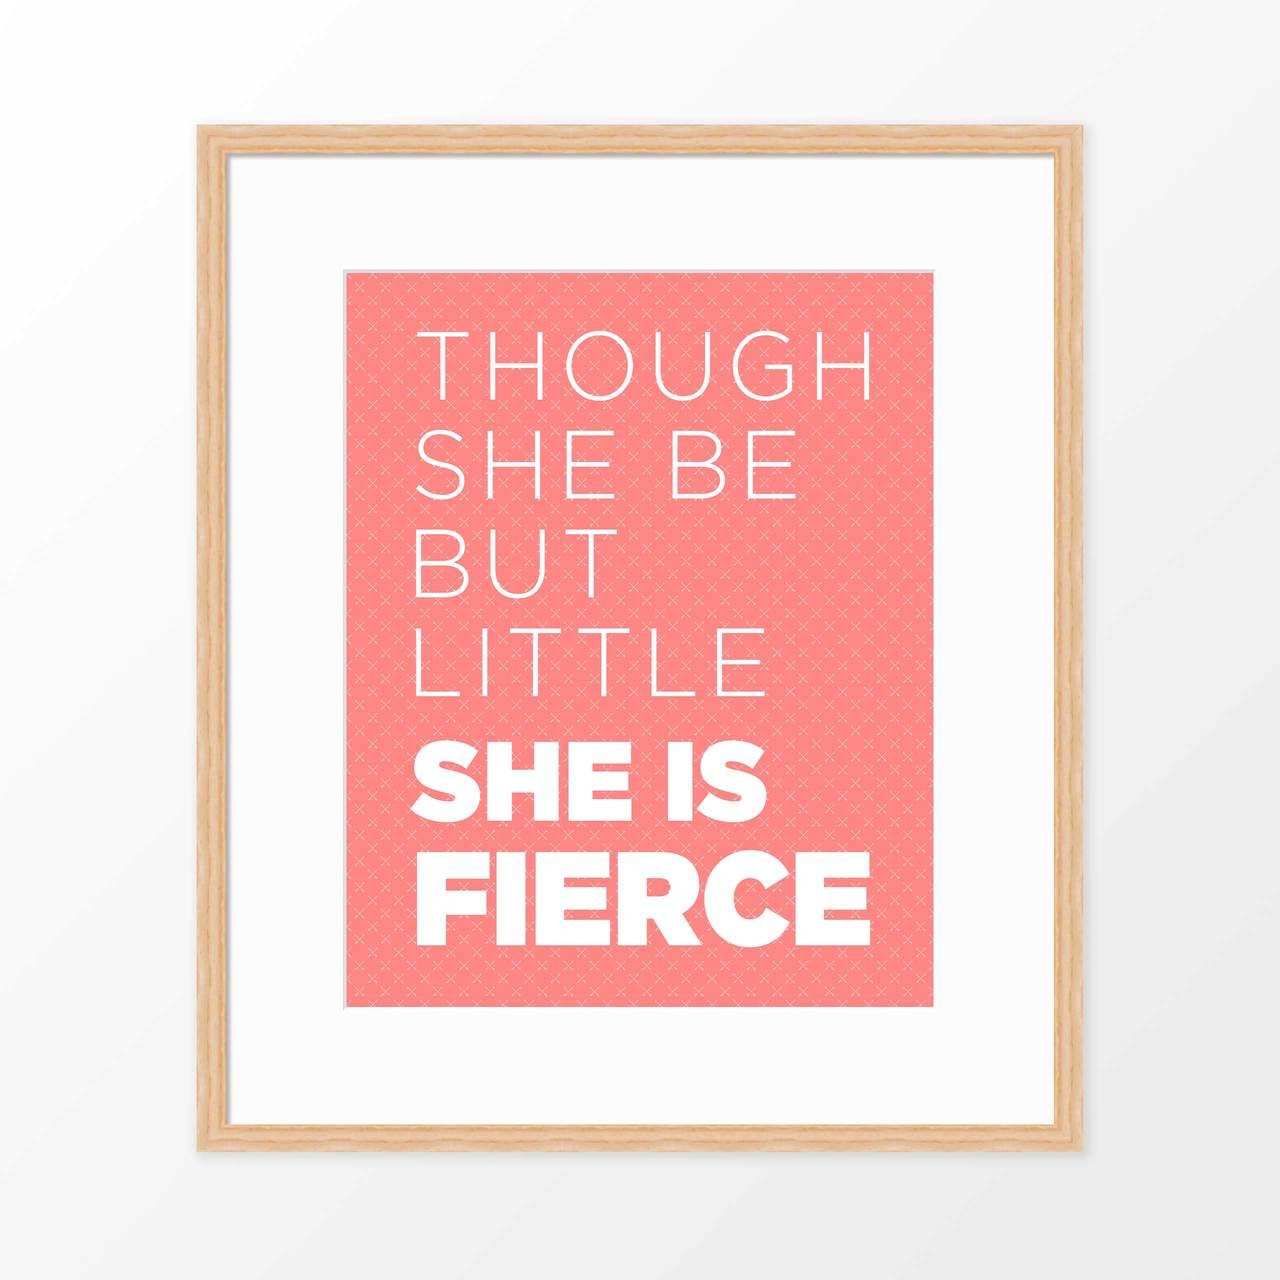 'She is Fierce' Kids' Art Poster from The Printed Home (Printable)